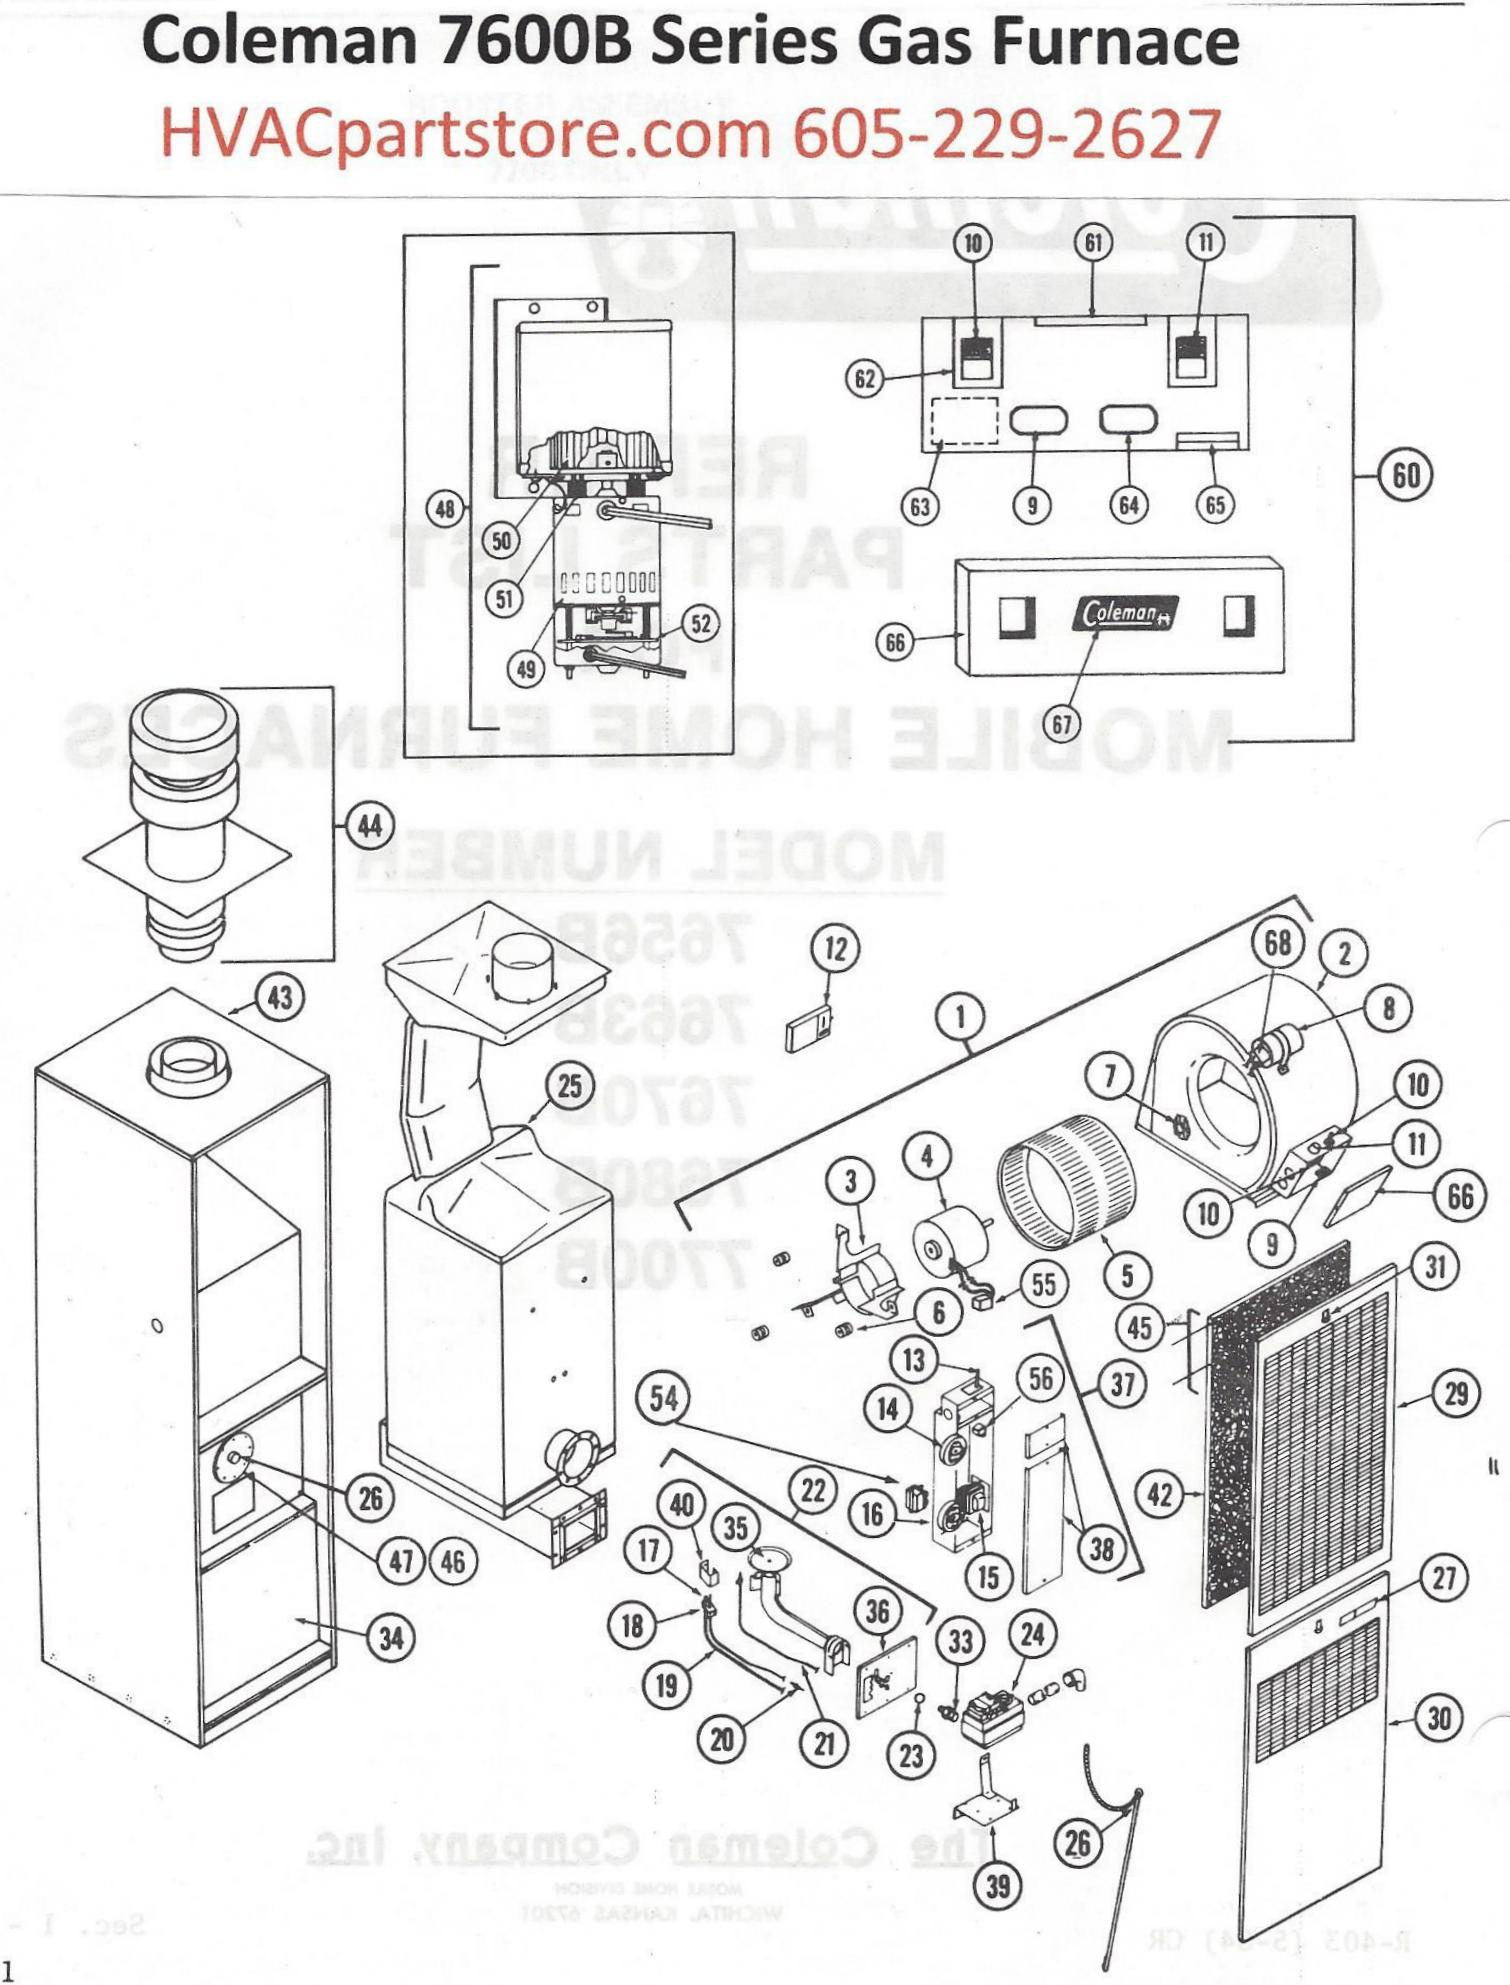 7600BDiagram?3087977773874111912 7656b856 coleman gas furnace parts hvacpartstore coleman furnace wiring diagram at crackthecode.co